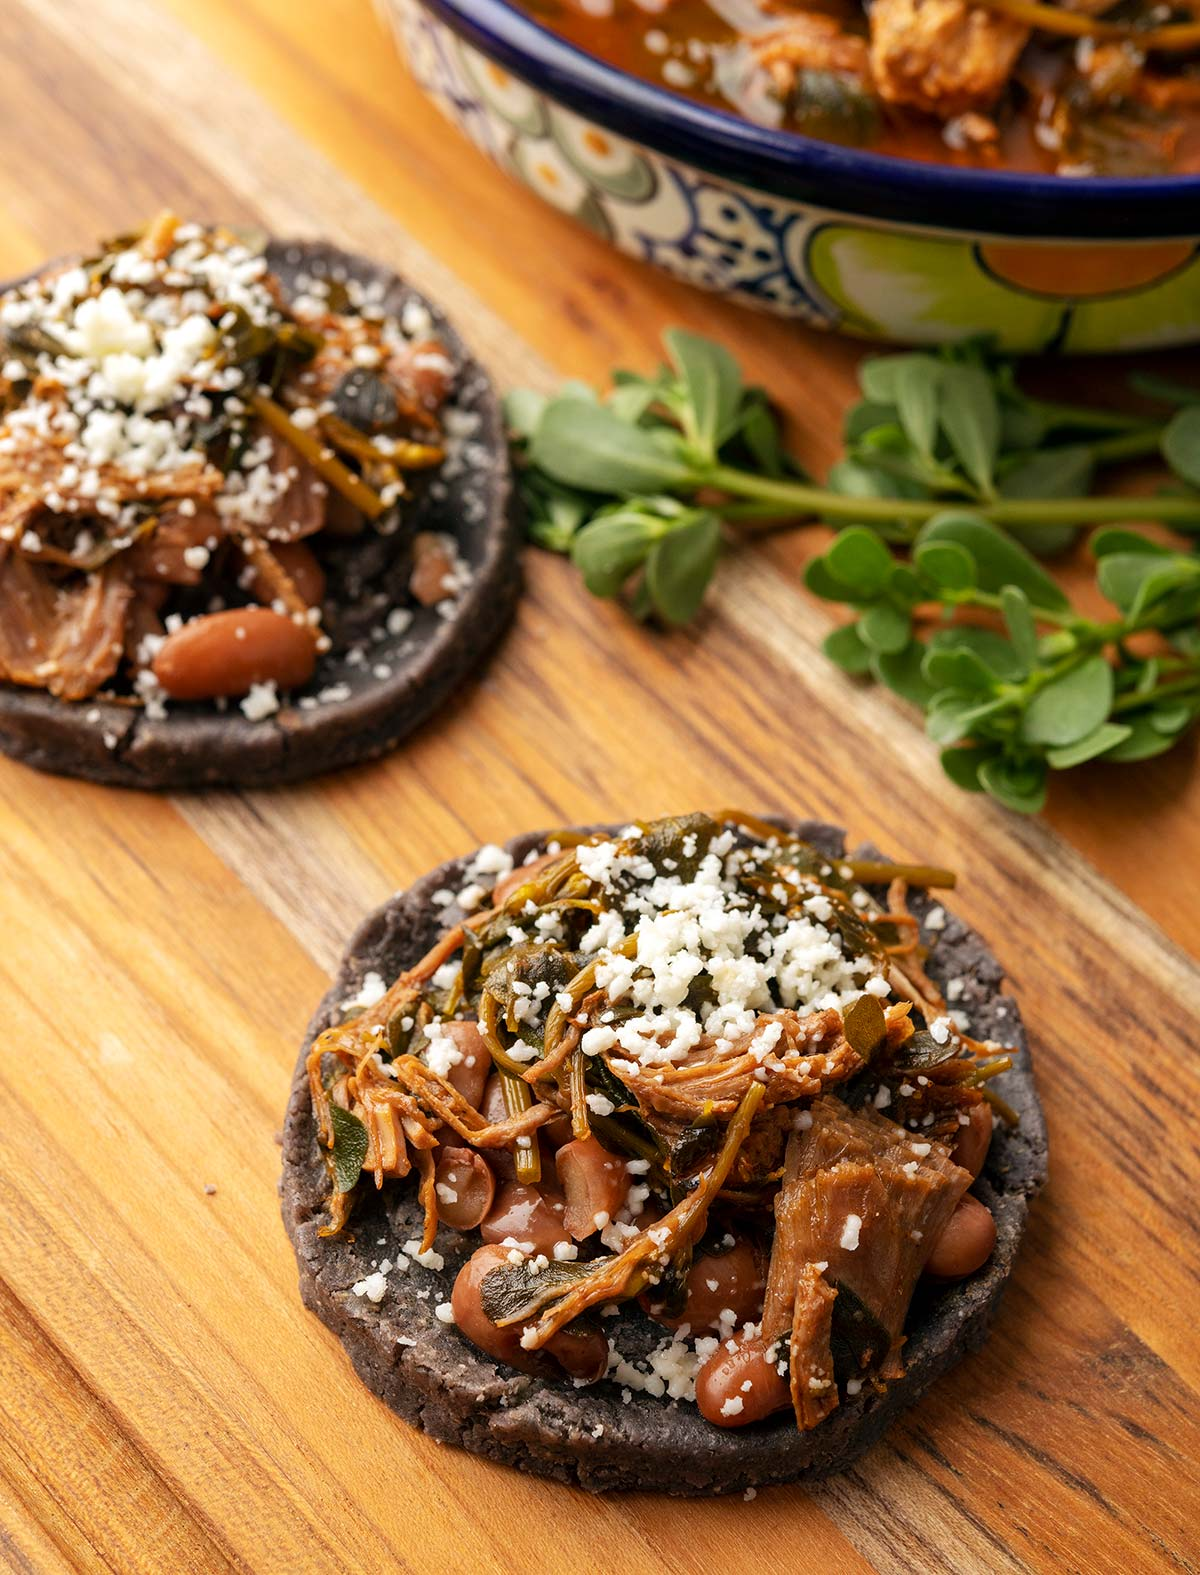 Homemade sopes filled with pork and purslane